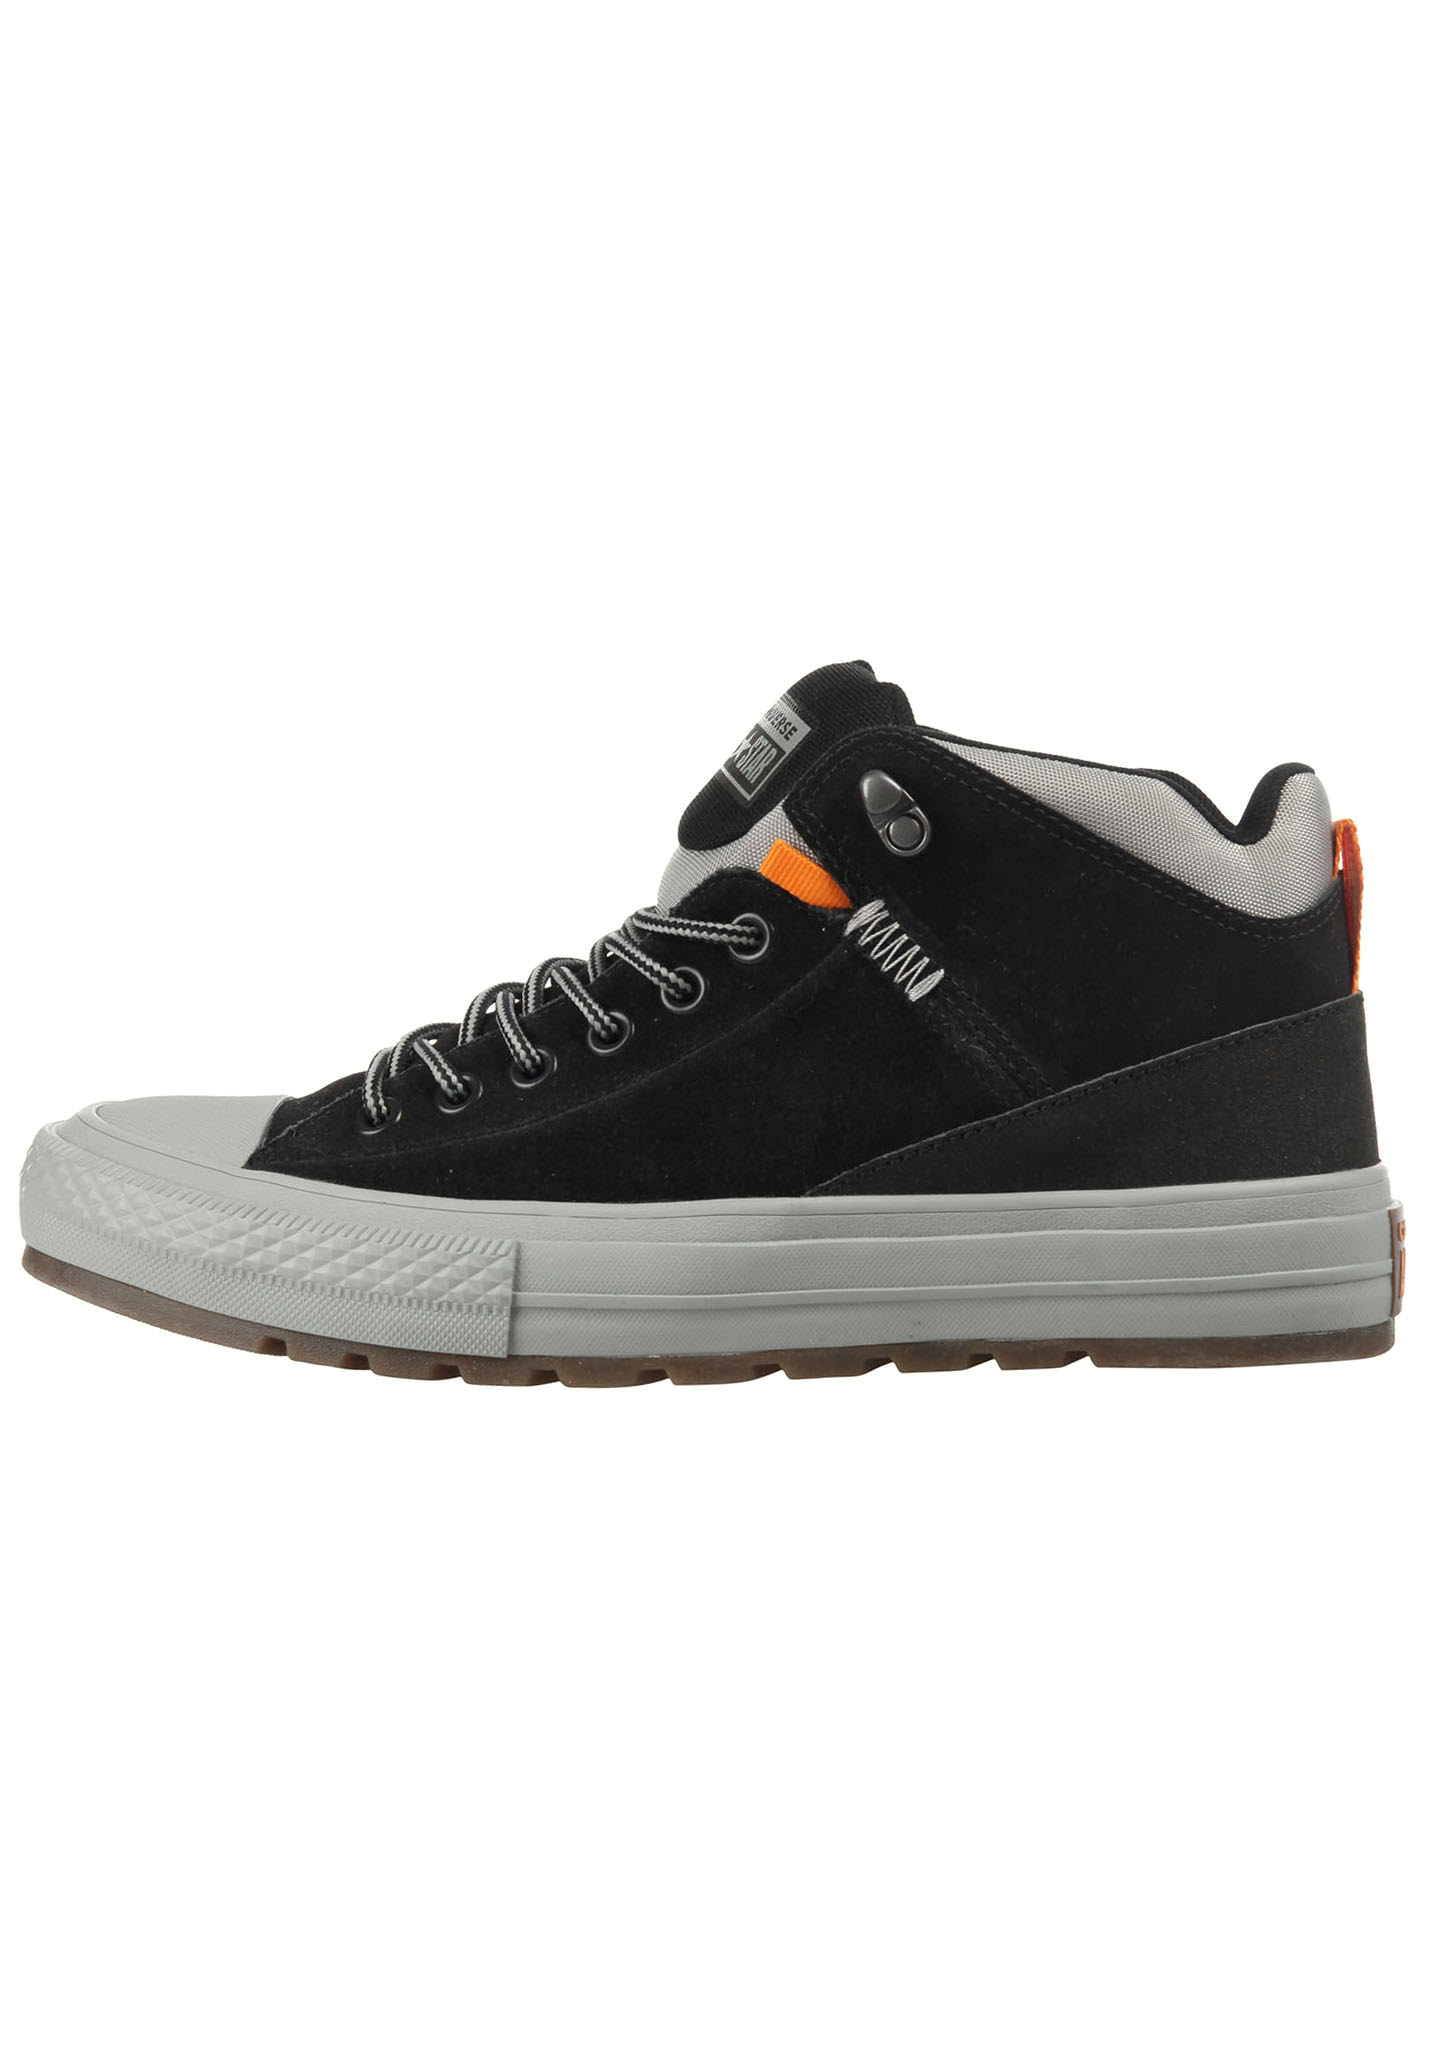 3948a68d4497 Converse Chuck Taylor All Star Street Hi - Sneakers for Men - Black - Planet  Sports